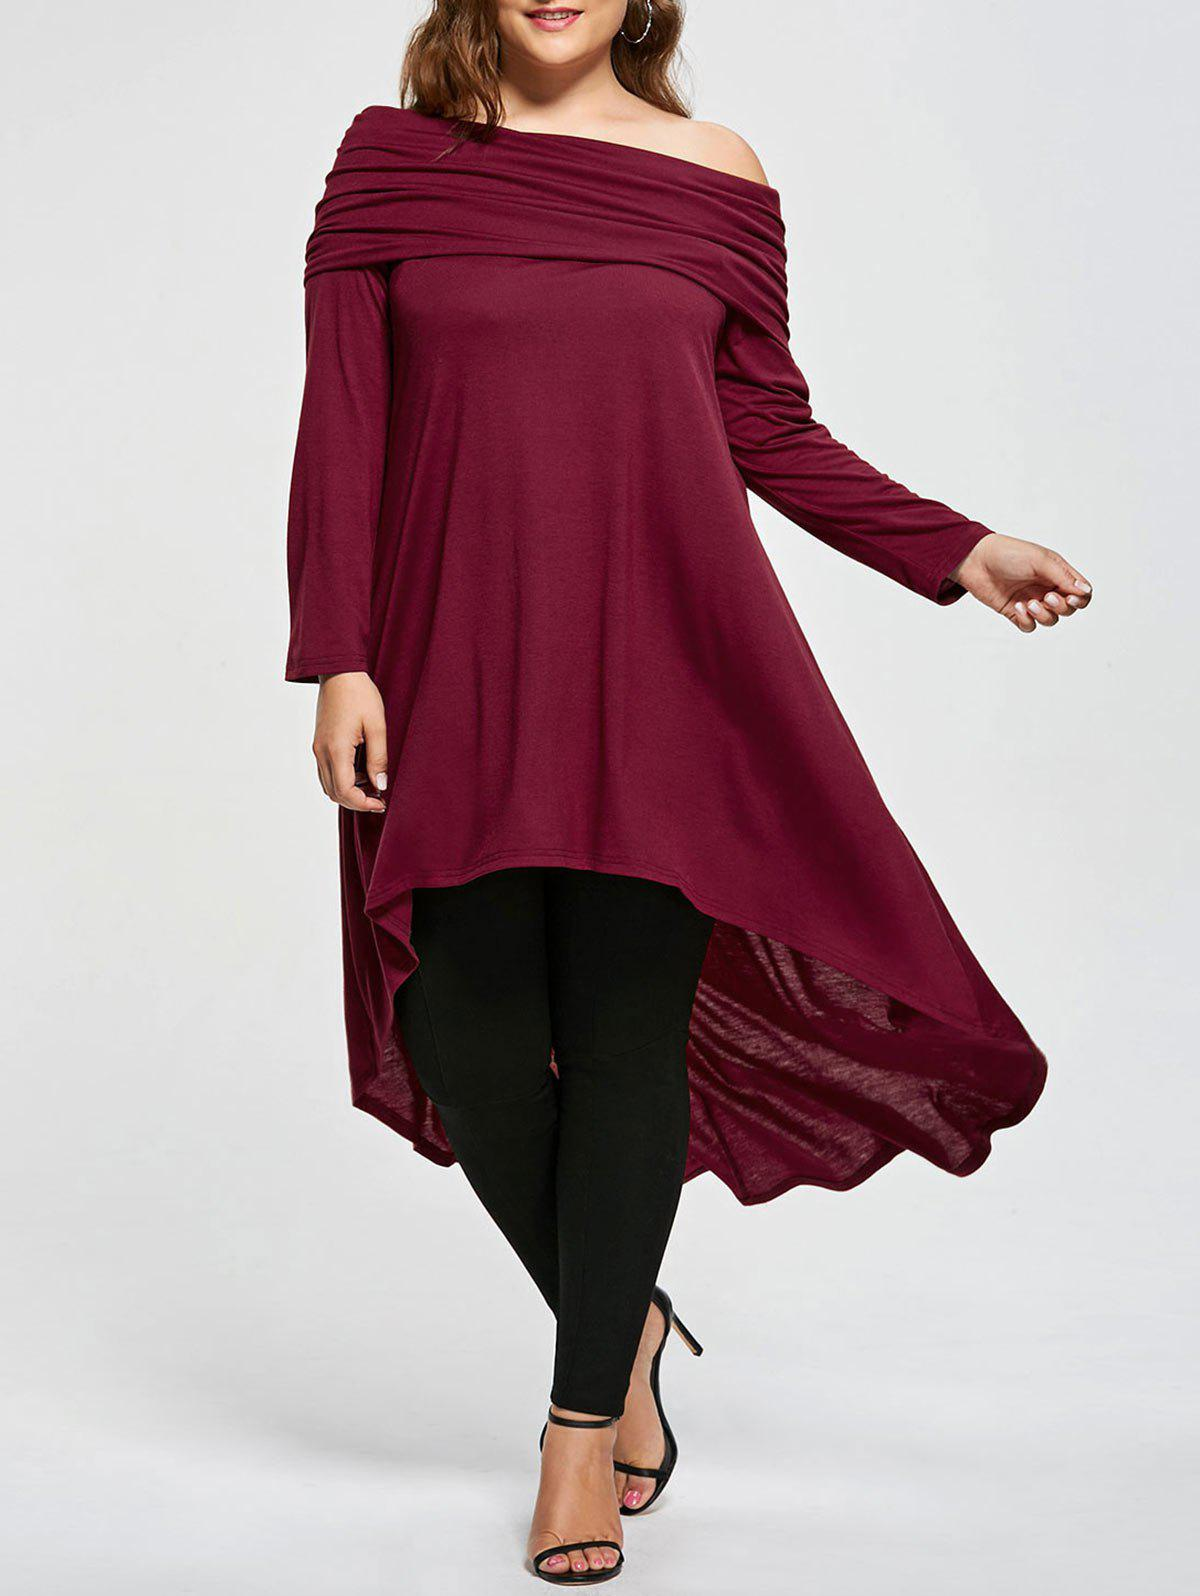 Plus Size Skew Neck Asymmetric Longline TopWOMEN<br><br>Size: 5XL; Color: WINE RED; Material: Cotton,Polyester; Shirt Length: Long; Sleeve Length: Full; Collar: Skew Collar; Style: Casual; Season: Fall,Spring; Pattern Type: Solid; Weight: 0.5000kg; Package Contents: 1 x T-shirt;